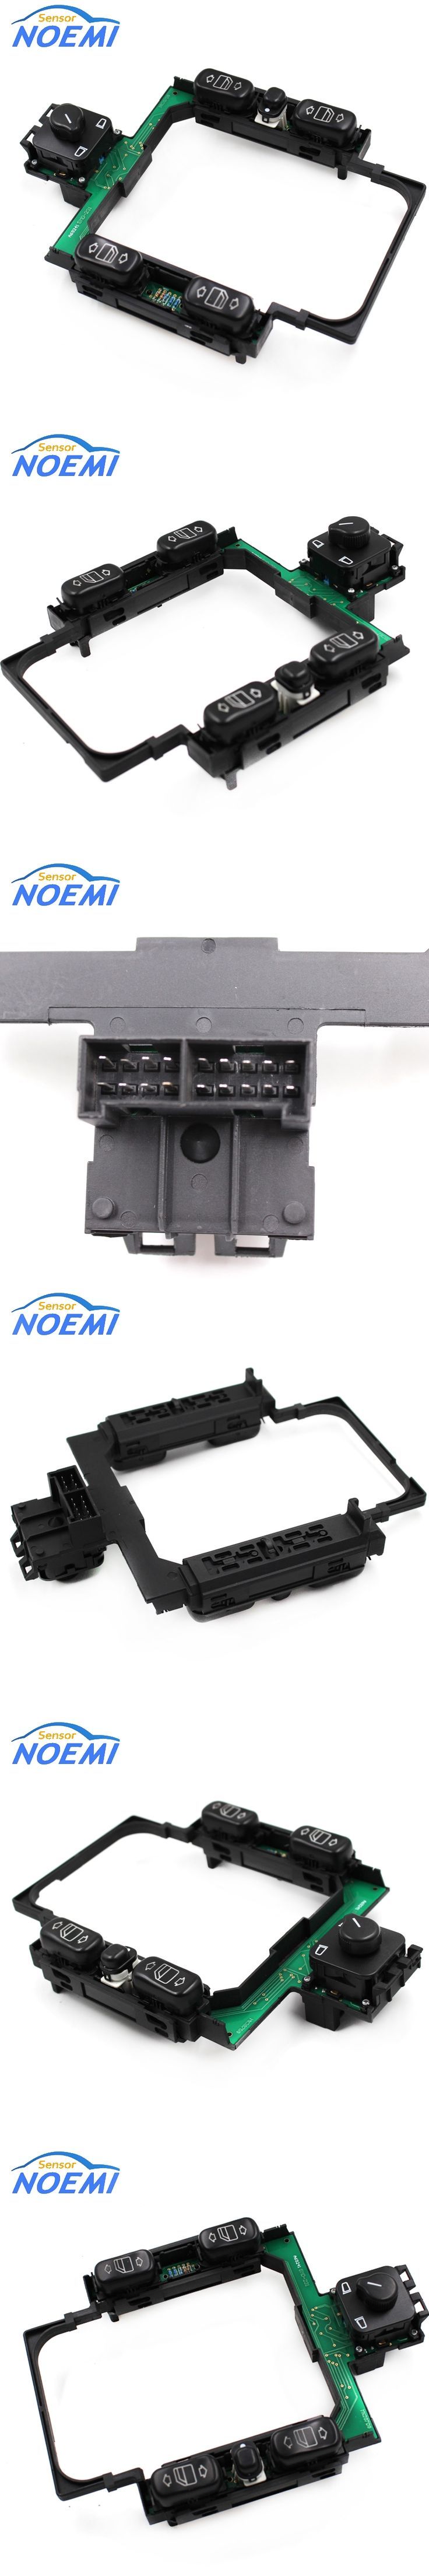 The 25 best mercedes benz parts ideas on pinterest mercedes yaopei new window center control master switch console assembly for mercedes benz e320 1996 1997 fandeluxe Image collections